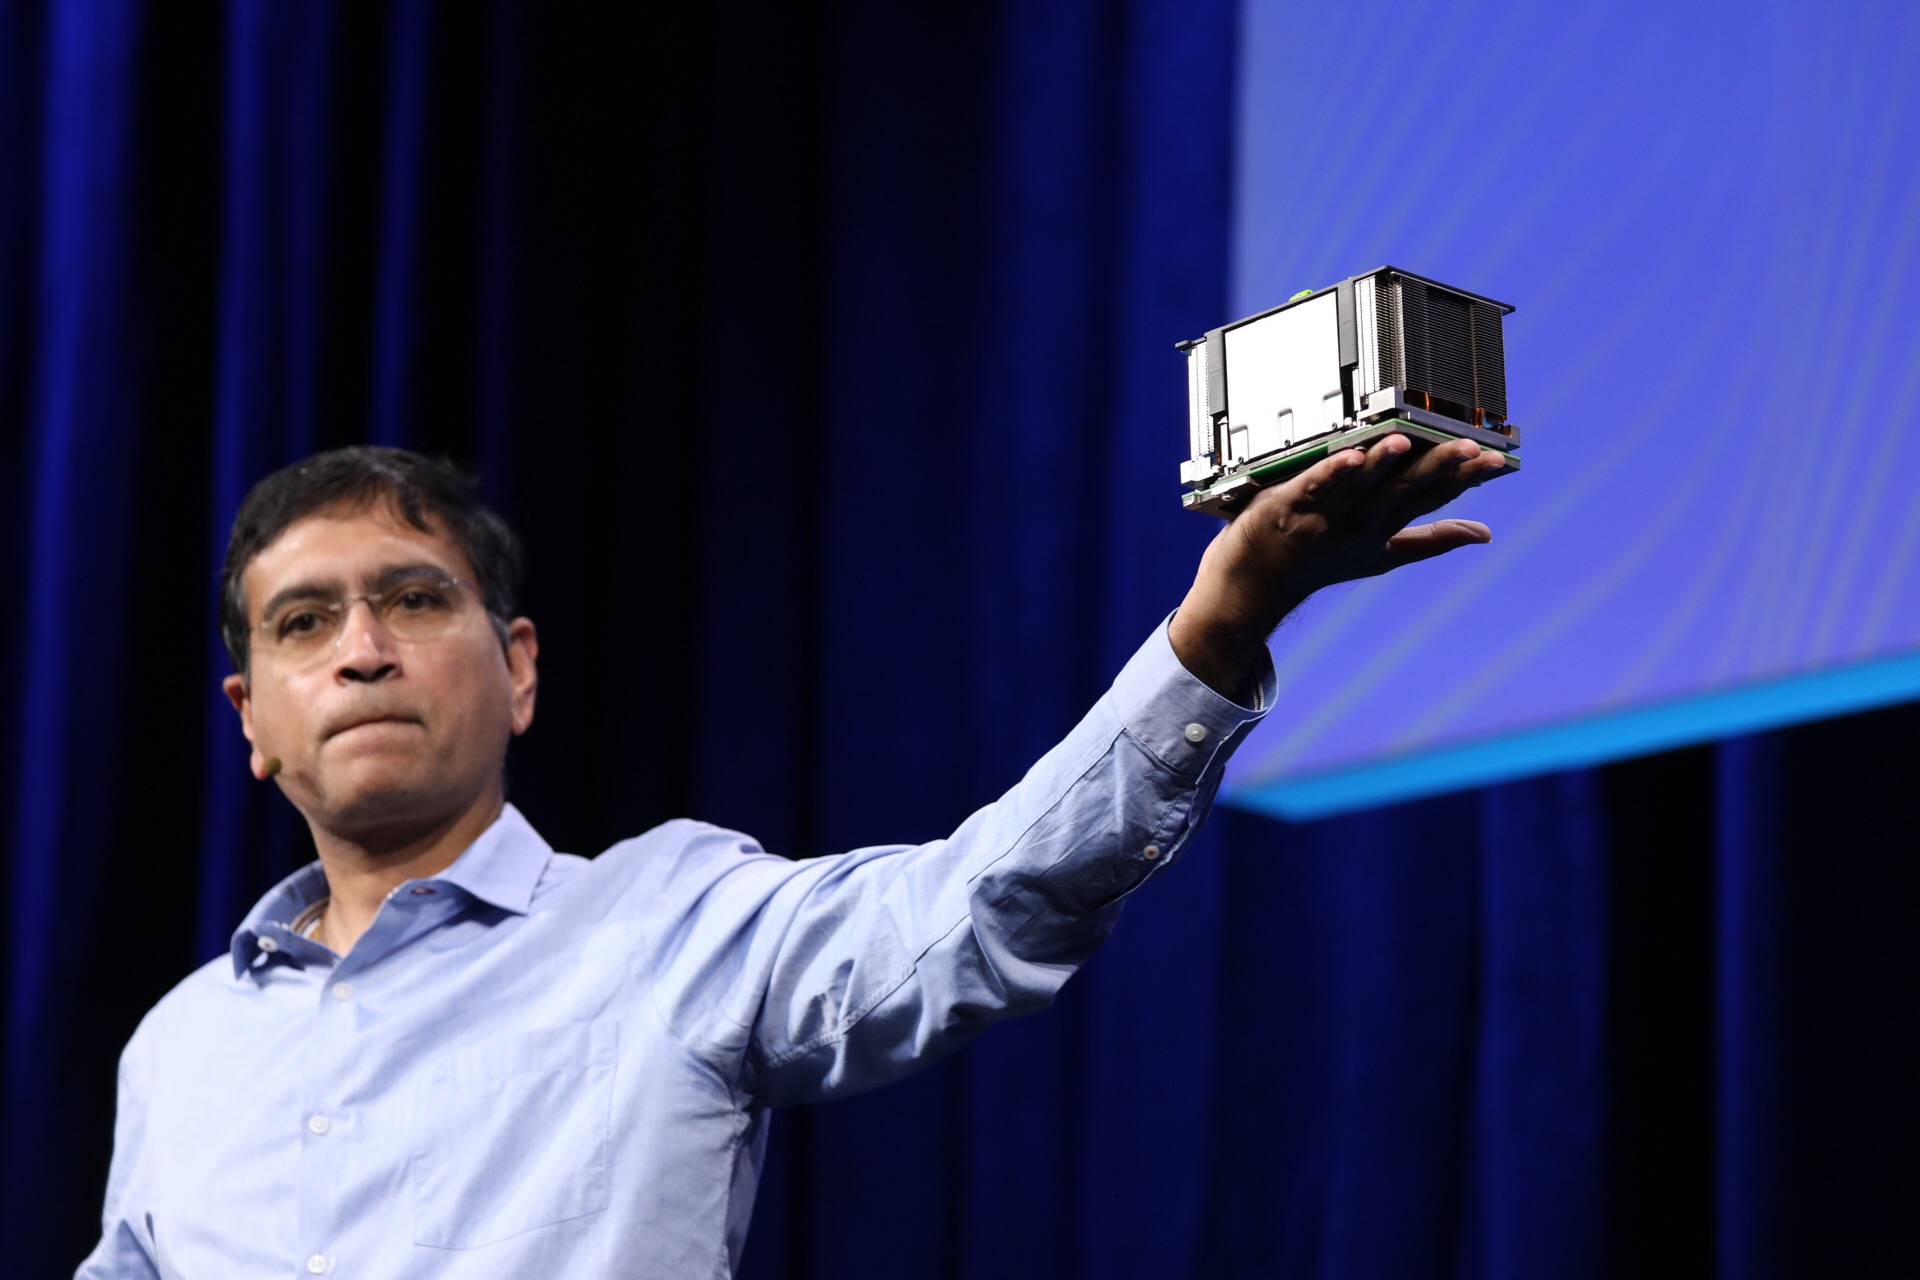 Vijay Rao, Facebook director of technology and strategy, holding up an OCP accelerator module during a keynote at the 2019 OCP Summit